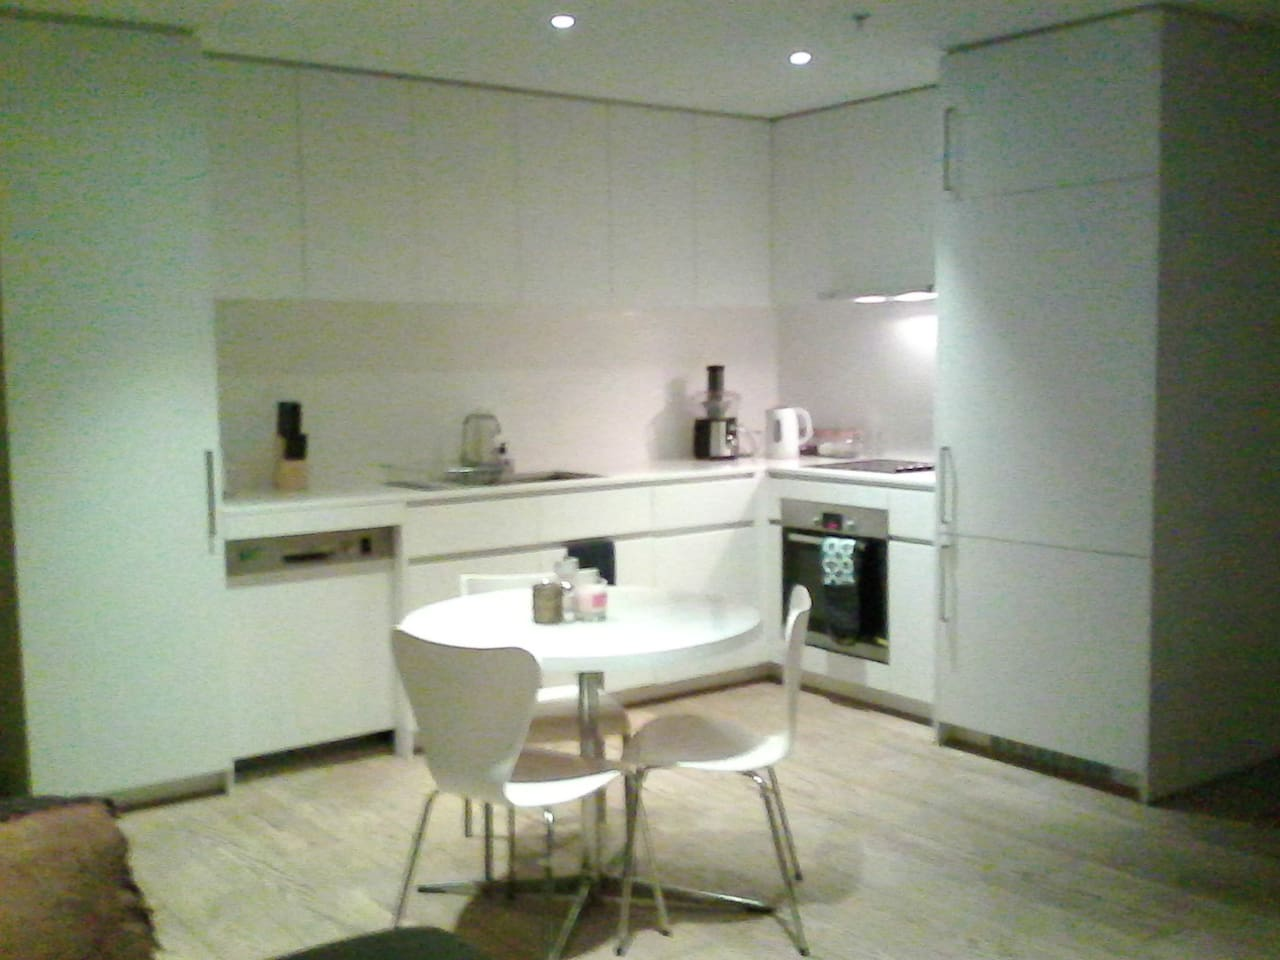 Open plan, clean kitchen comes with all the nesesary equipment and more that you need to entertain and impress any guest.